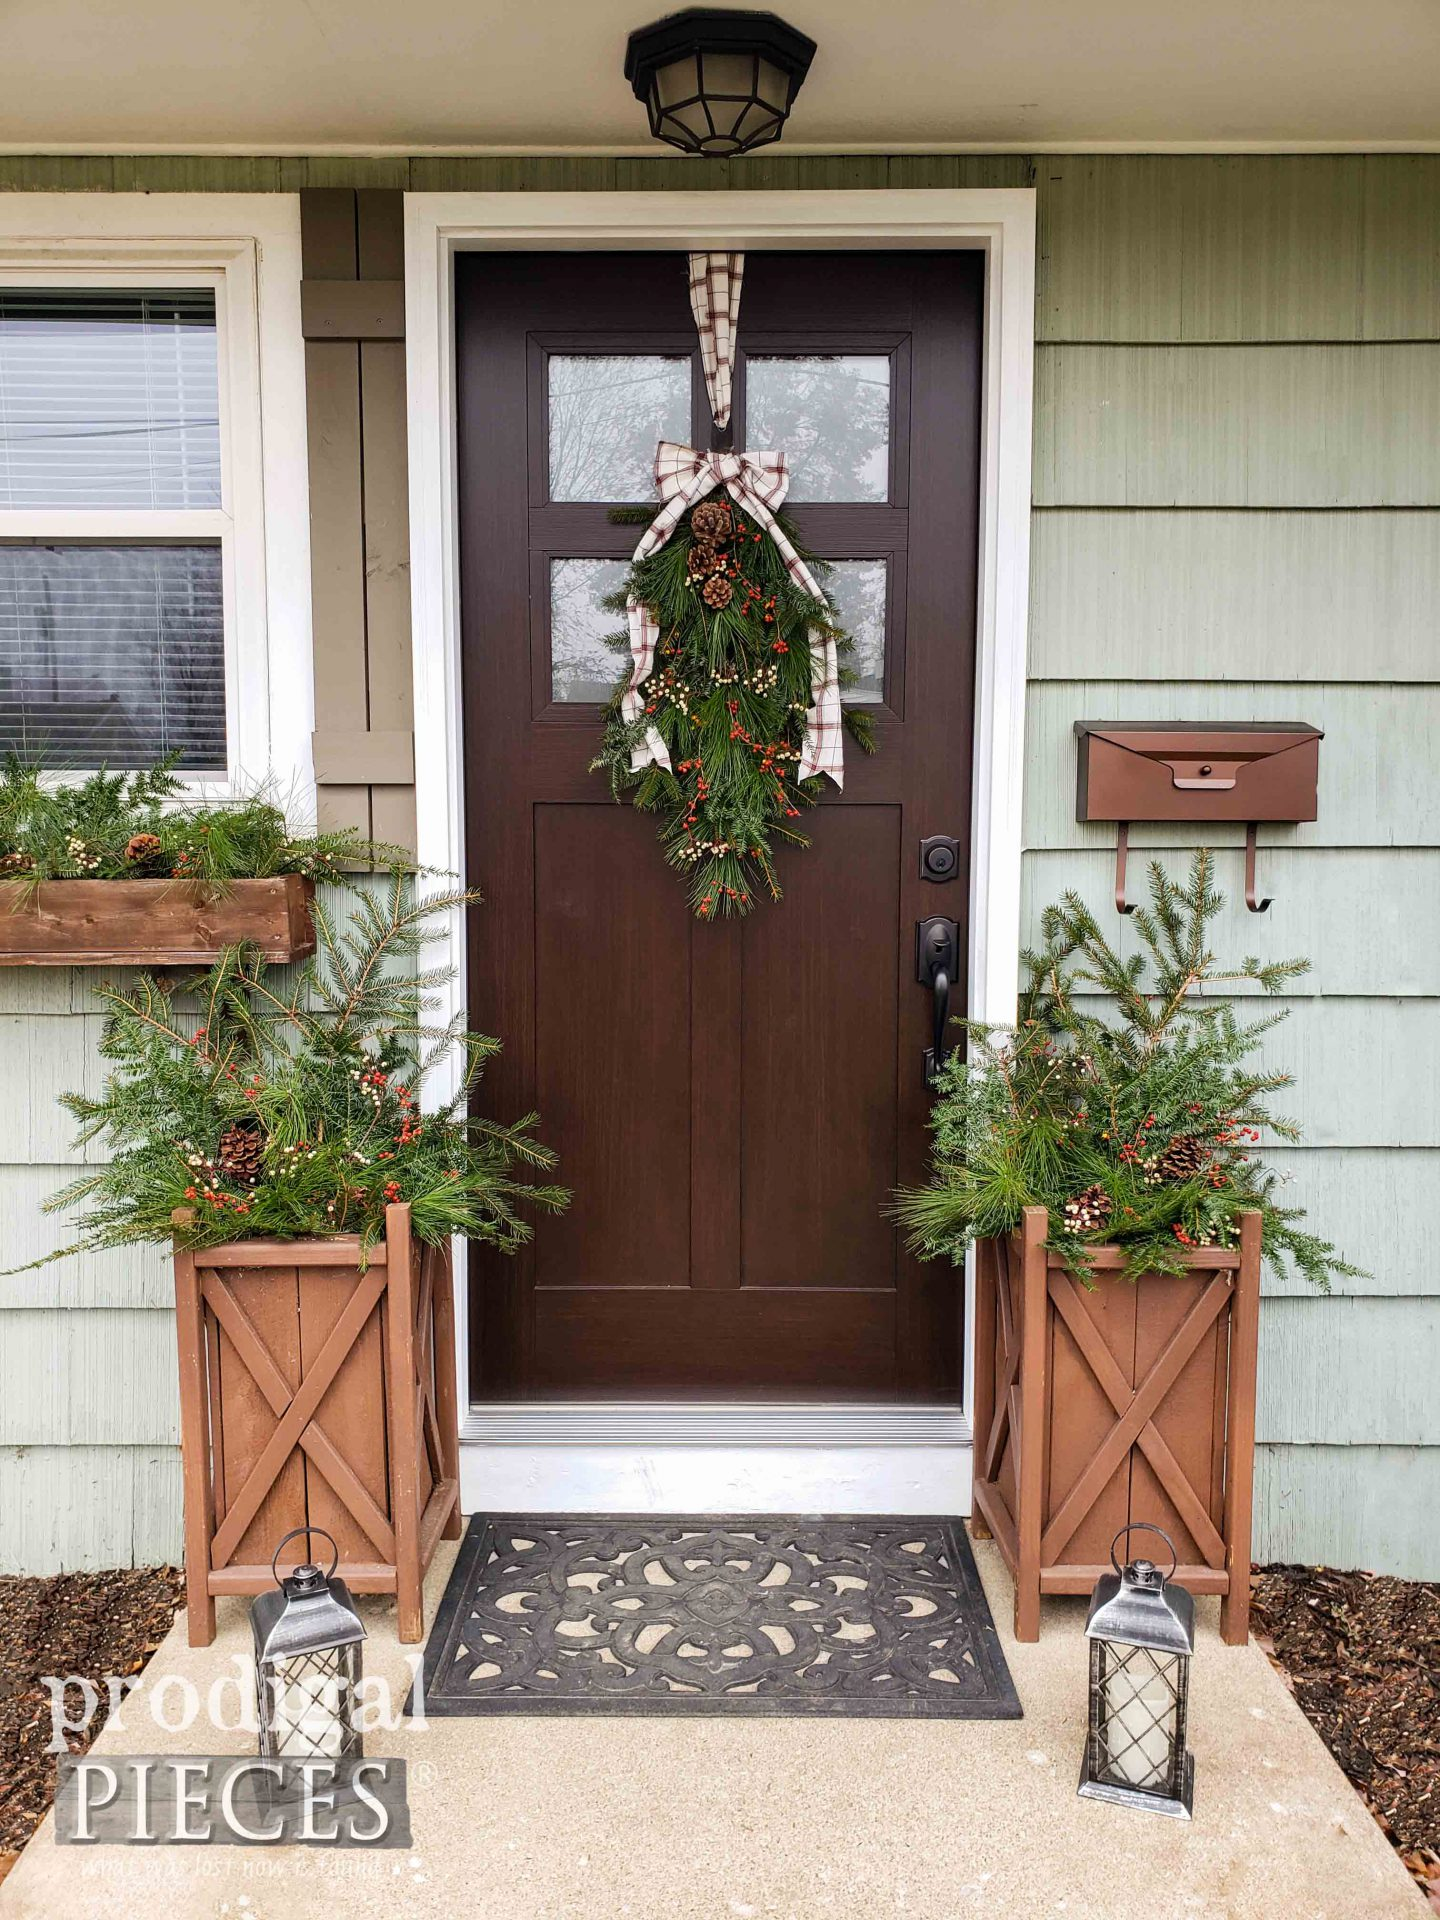 Farmhouse Christmas Front Door Decor with DIY Swag, Window Box, and Planter Tutorial by Larissa of Prodigal Pieces | prodigalpieces.com #farmhouse #diy #christmas #home #homedecor #nordic #fresh